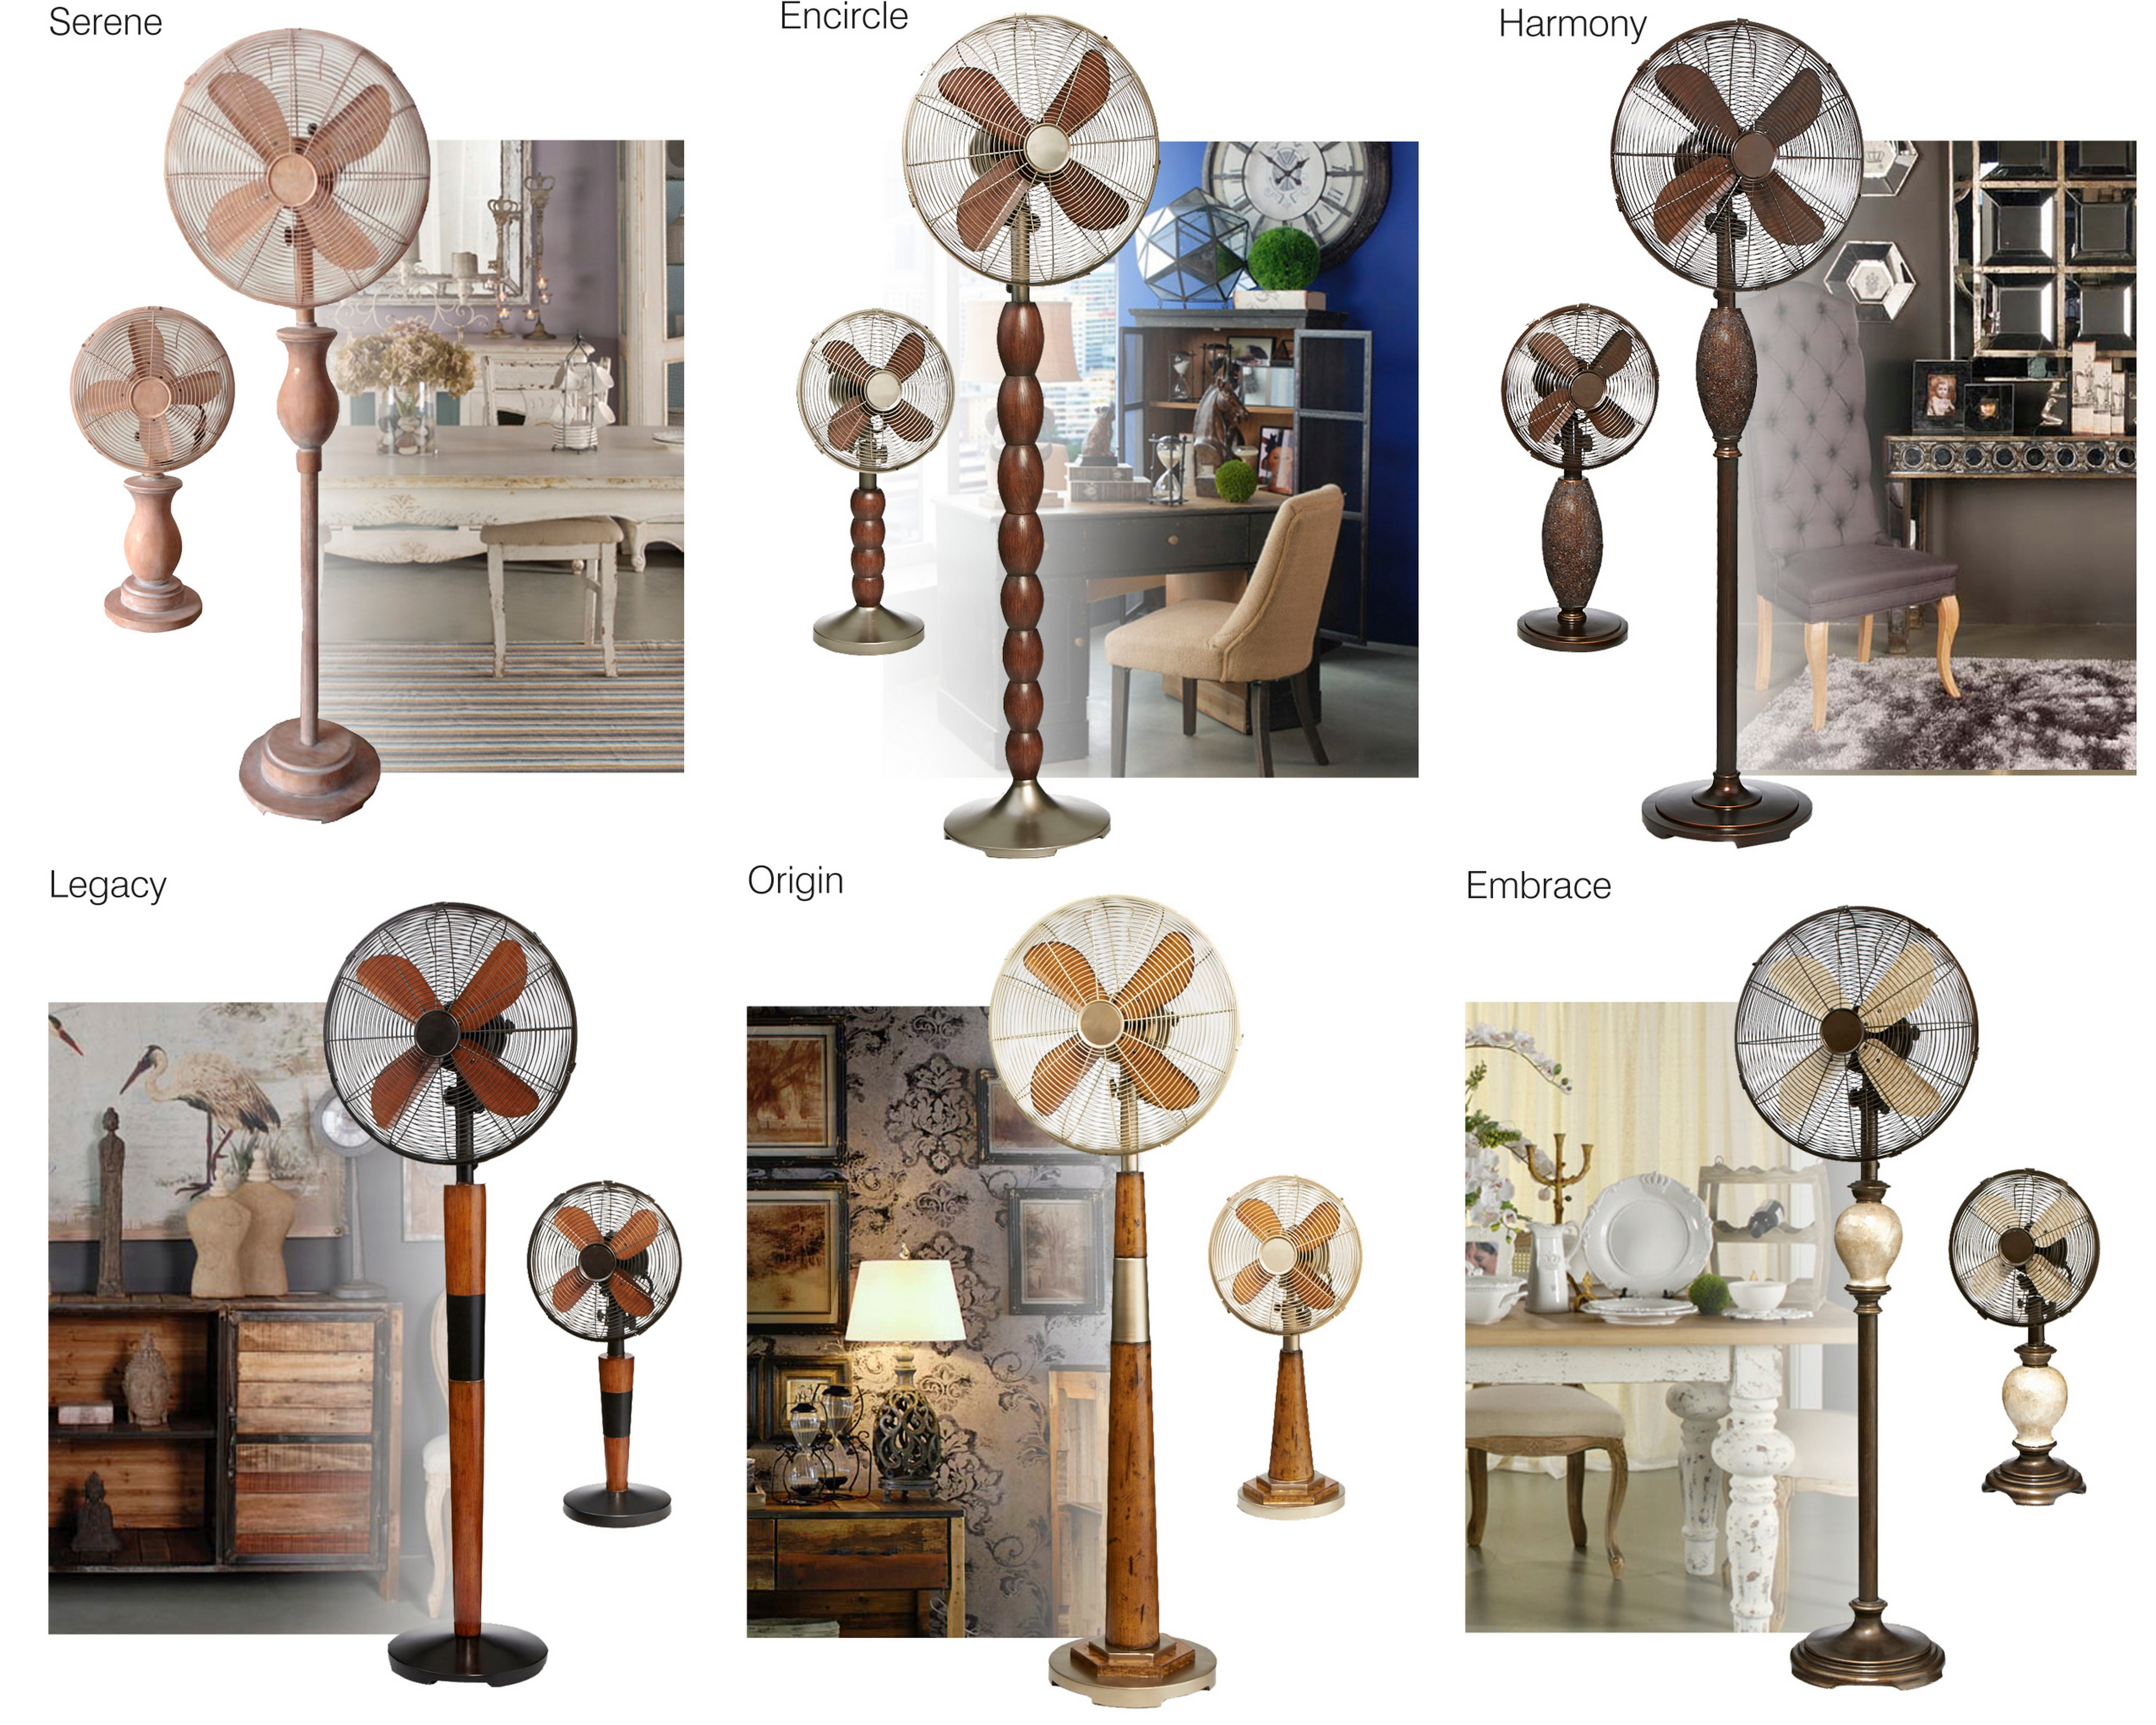 Http Donnyosmond Com Blog Home Design Donny Osmond Home Fall Breeze With Stylish Fans